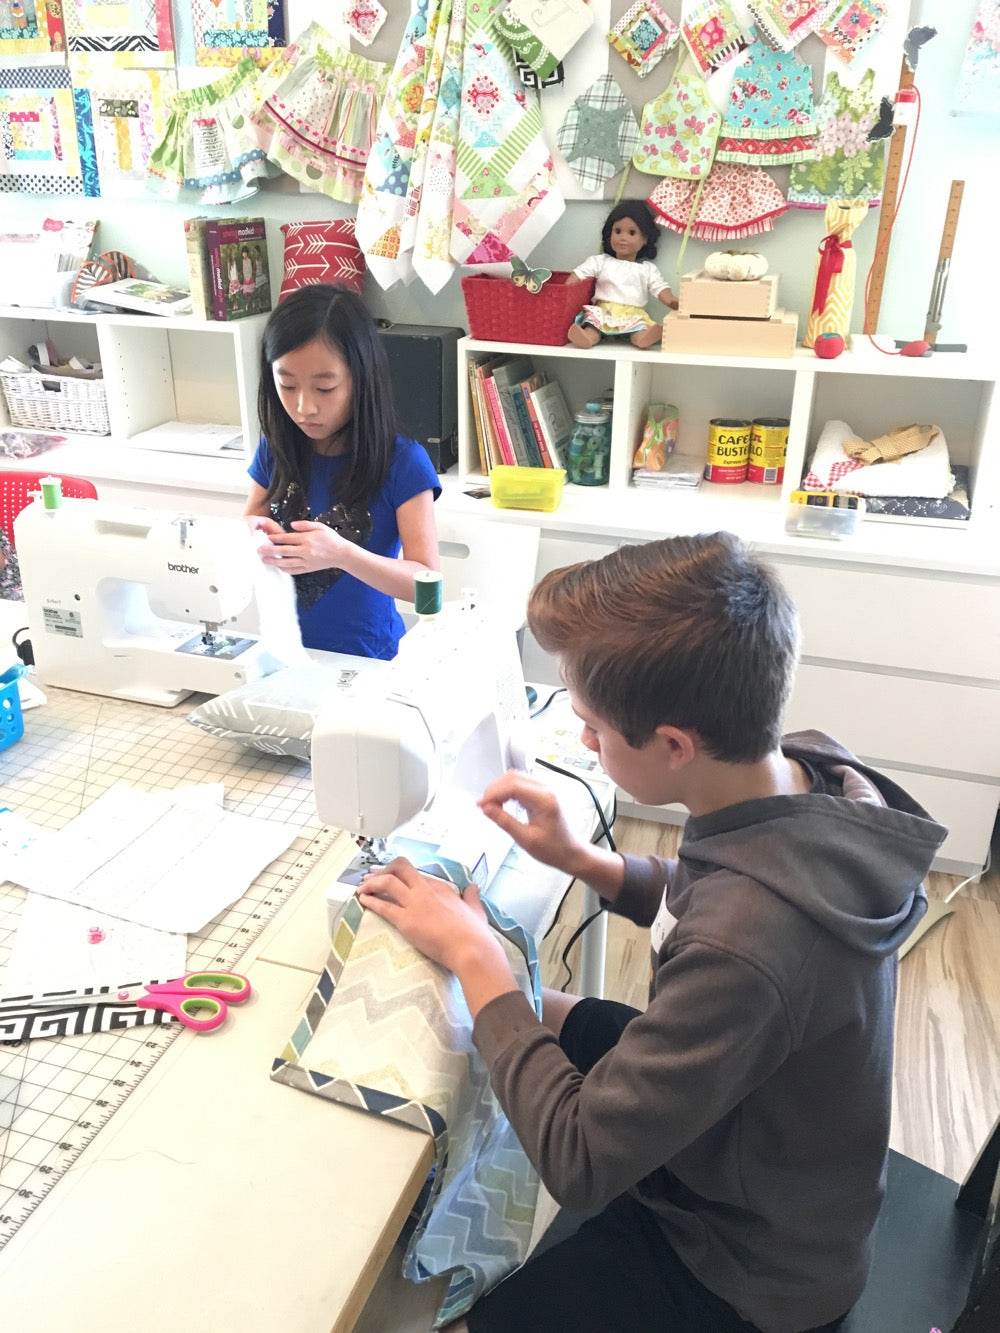 Spring Break 2020 - Beginner Sewing - Monday March 9, 9:30-12:00